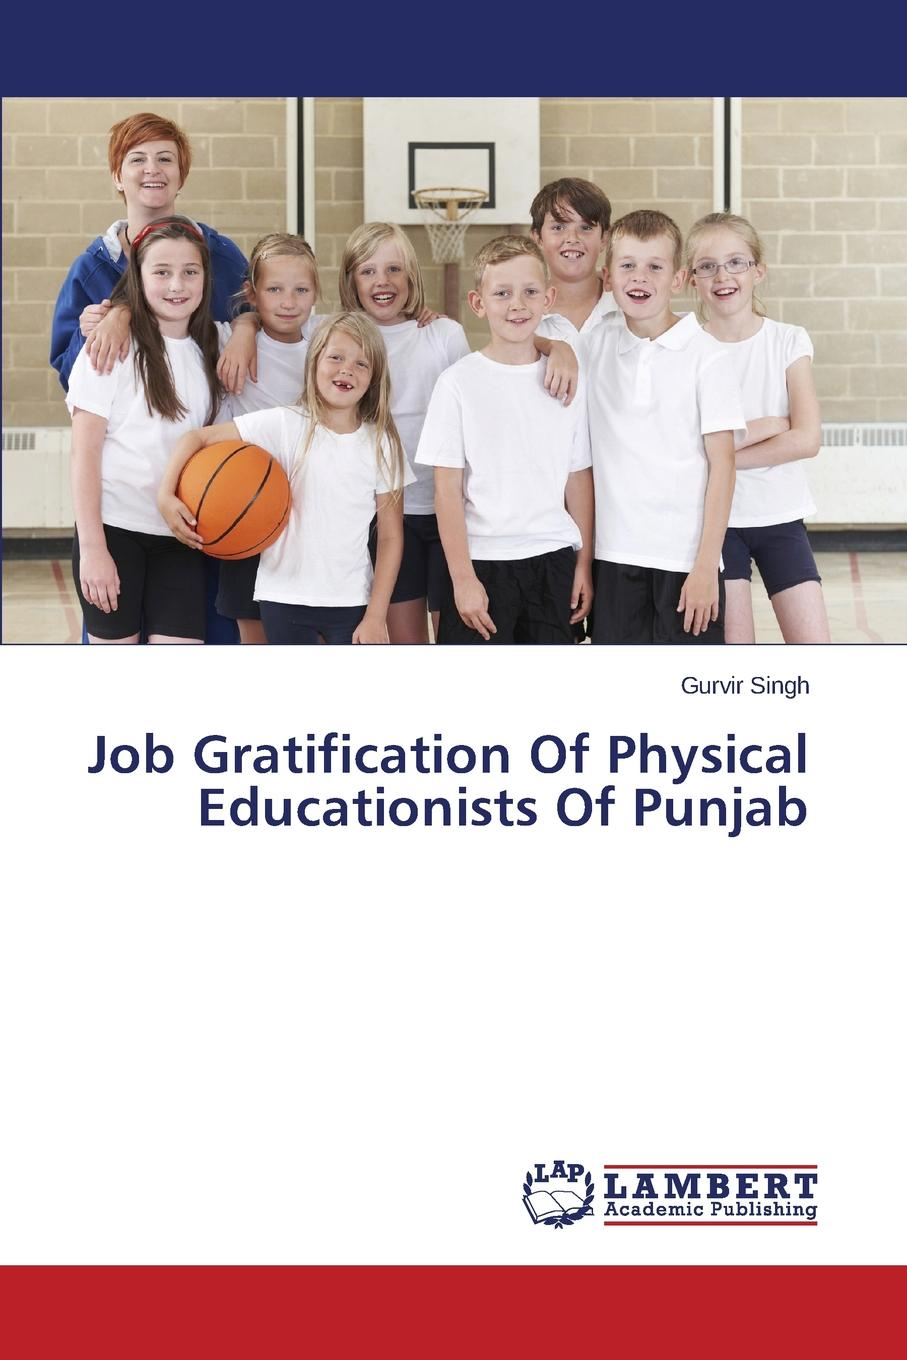 цена Singh Gurvir Job Gratification Of Physical Educationists Of Punjab онлайн в 2017 году